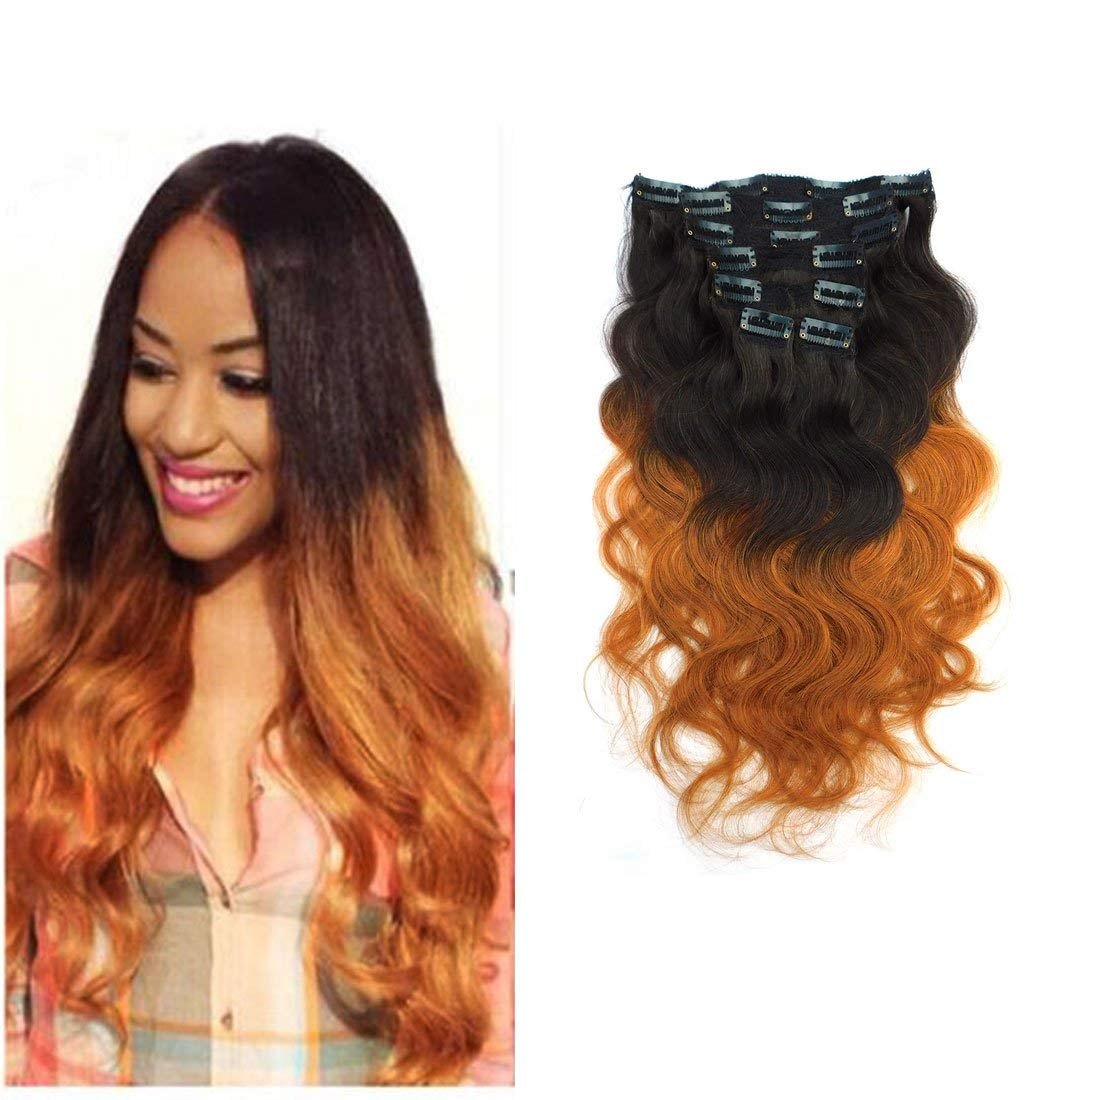 Cheap 30g Hair Extensions Find 30g Hair Extensions Deals On Line At